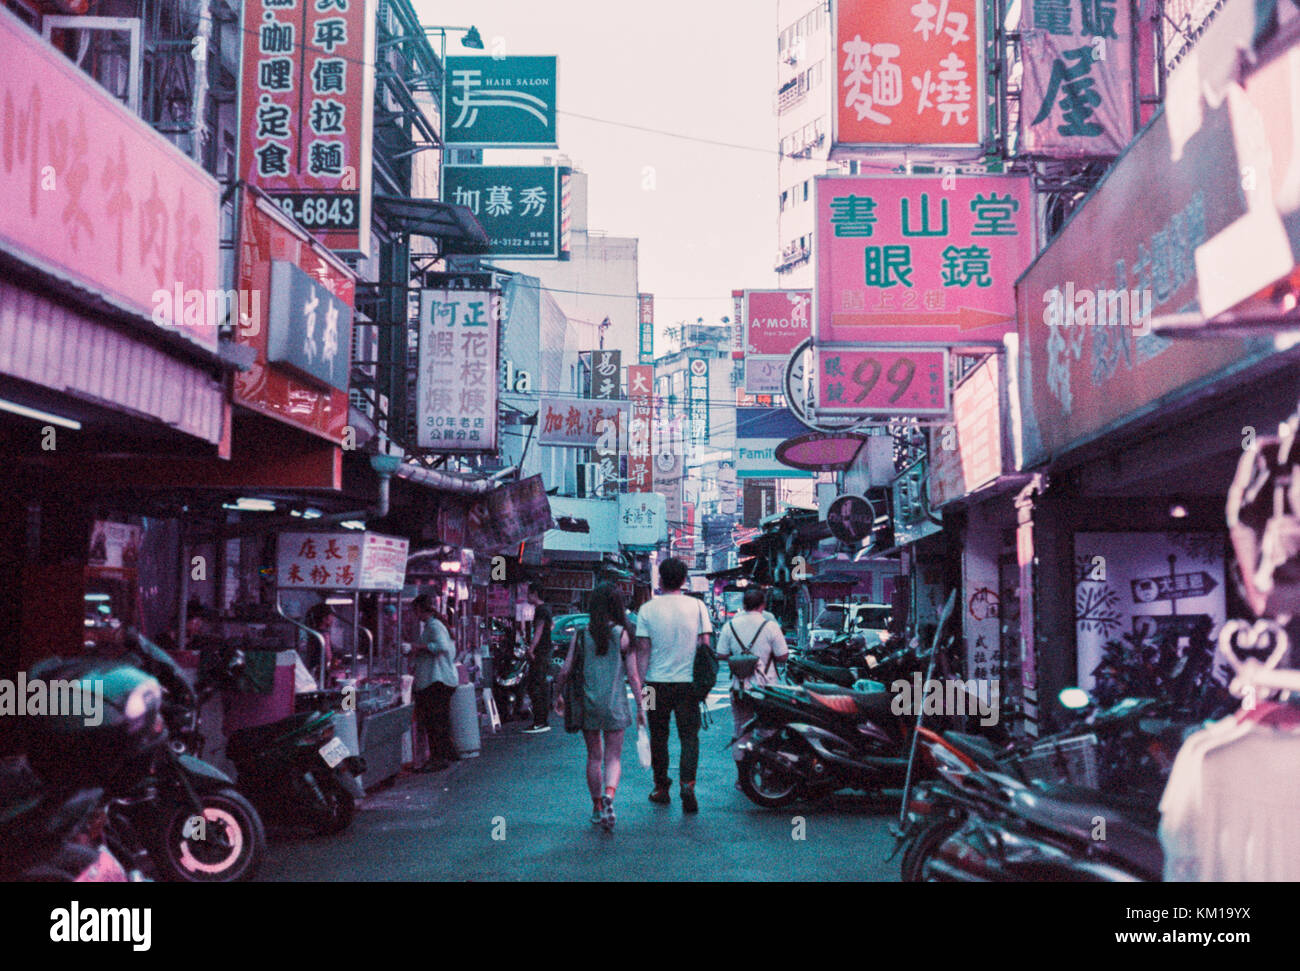 People walking through a surreal, colorful, busy street filled with advertisements in Taipei, Taiwan - Stock Image